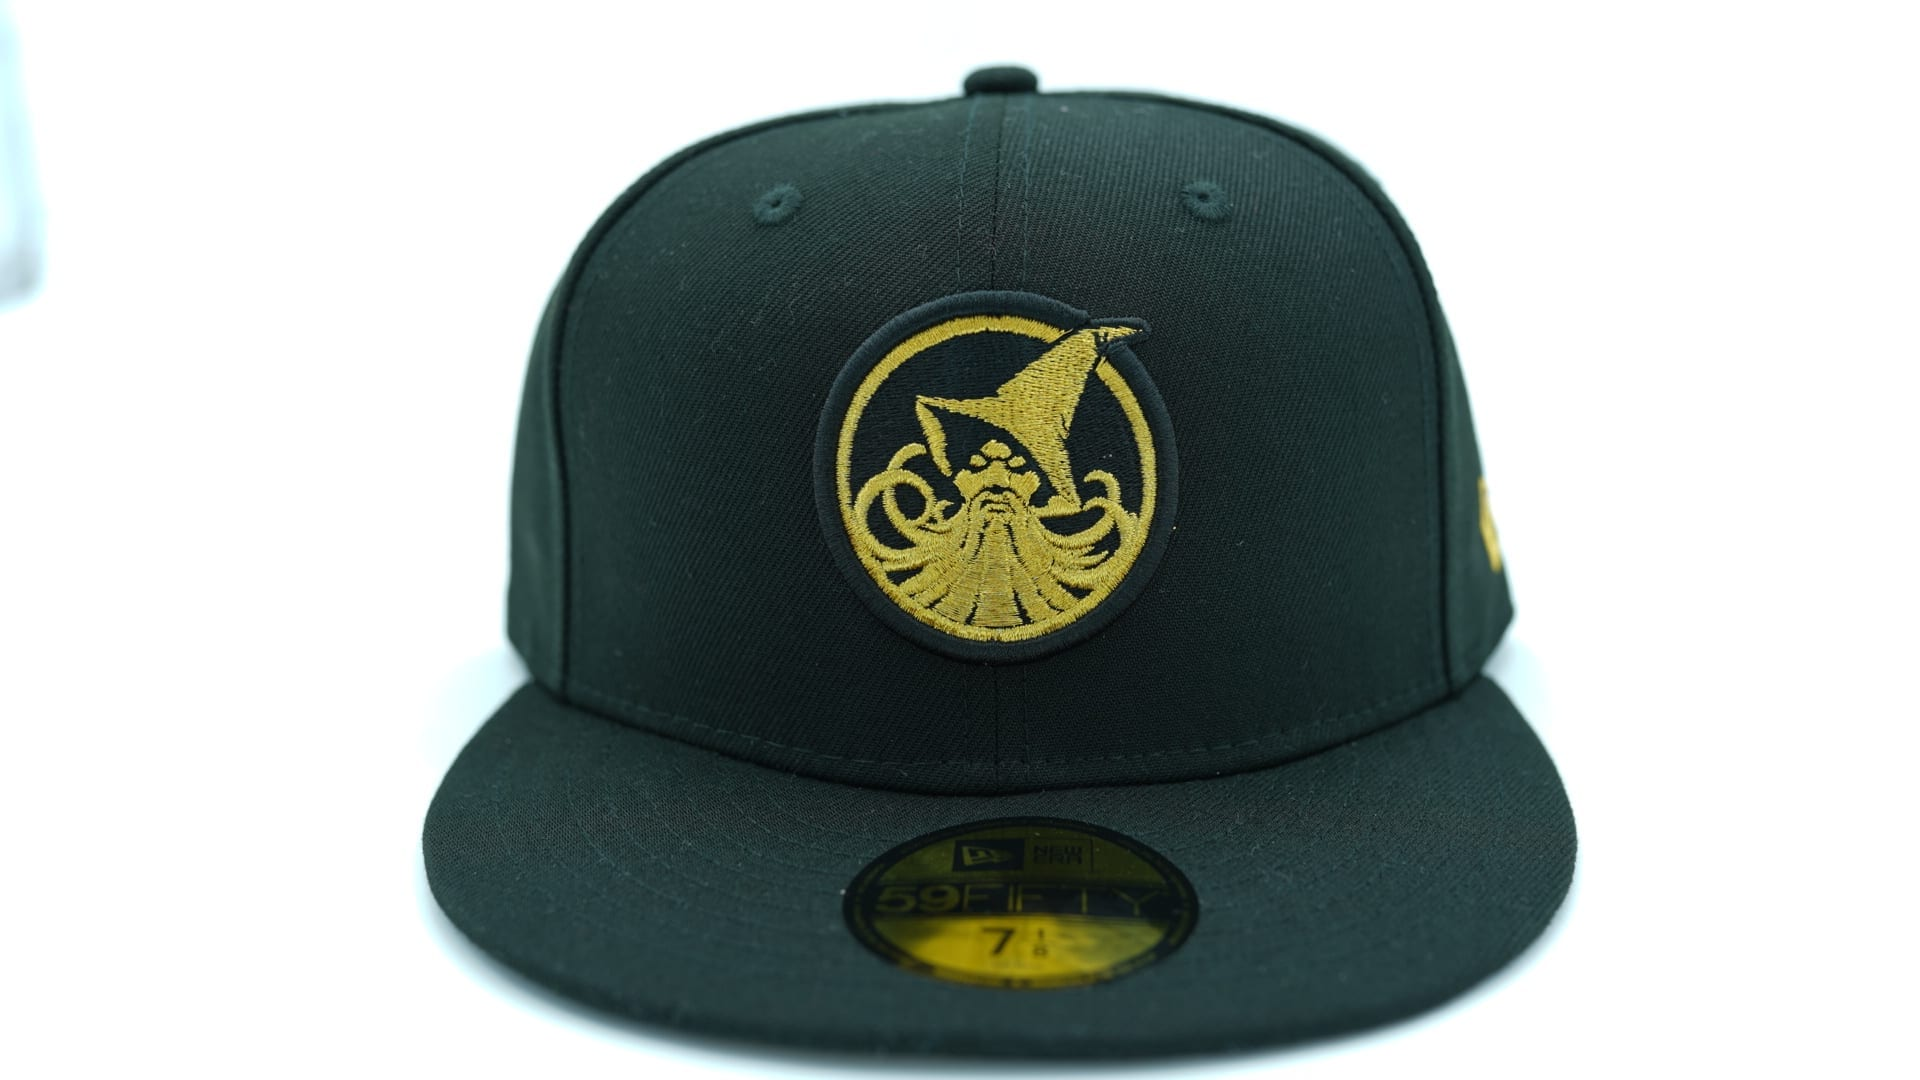 captain character face fitted baseball cap marvel era america winter soldier shield hat